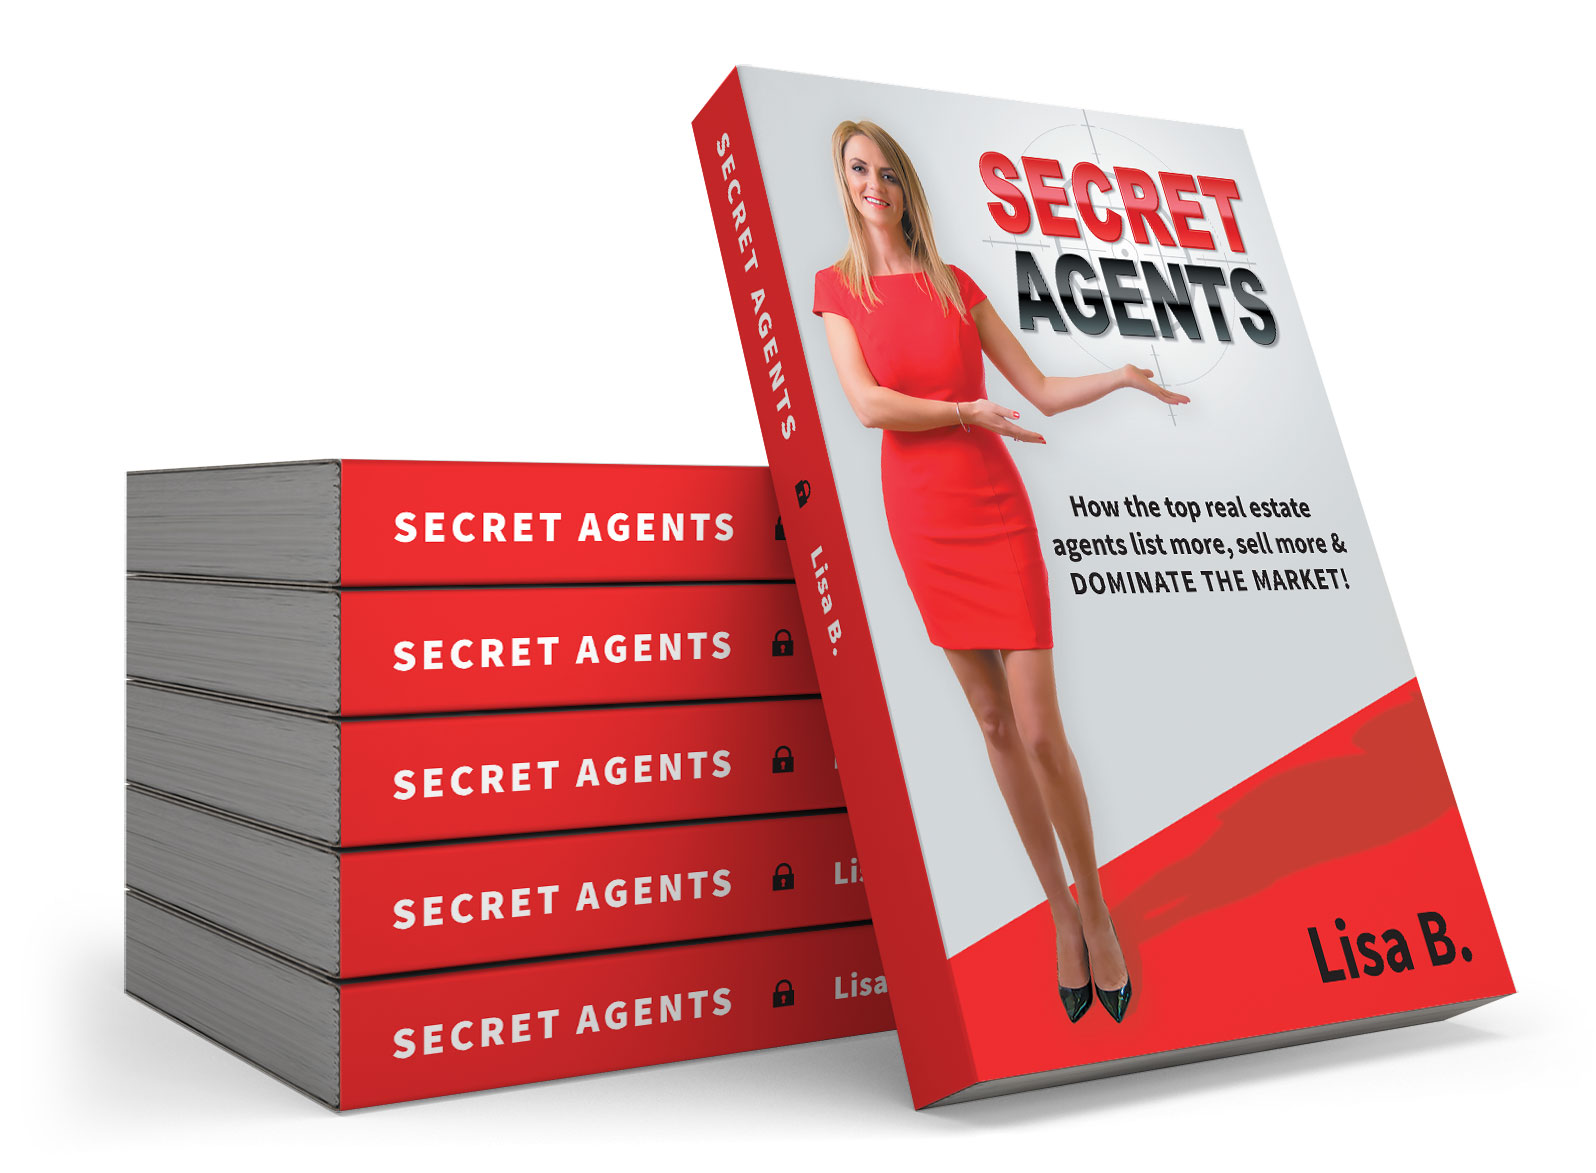 PAPERBACK: Secret Agents: How the top real estate agents list more, sell more & DOMINATE THE MARKET!